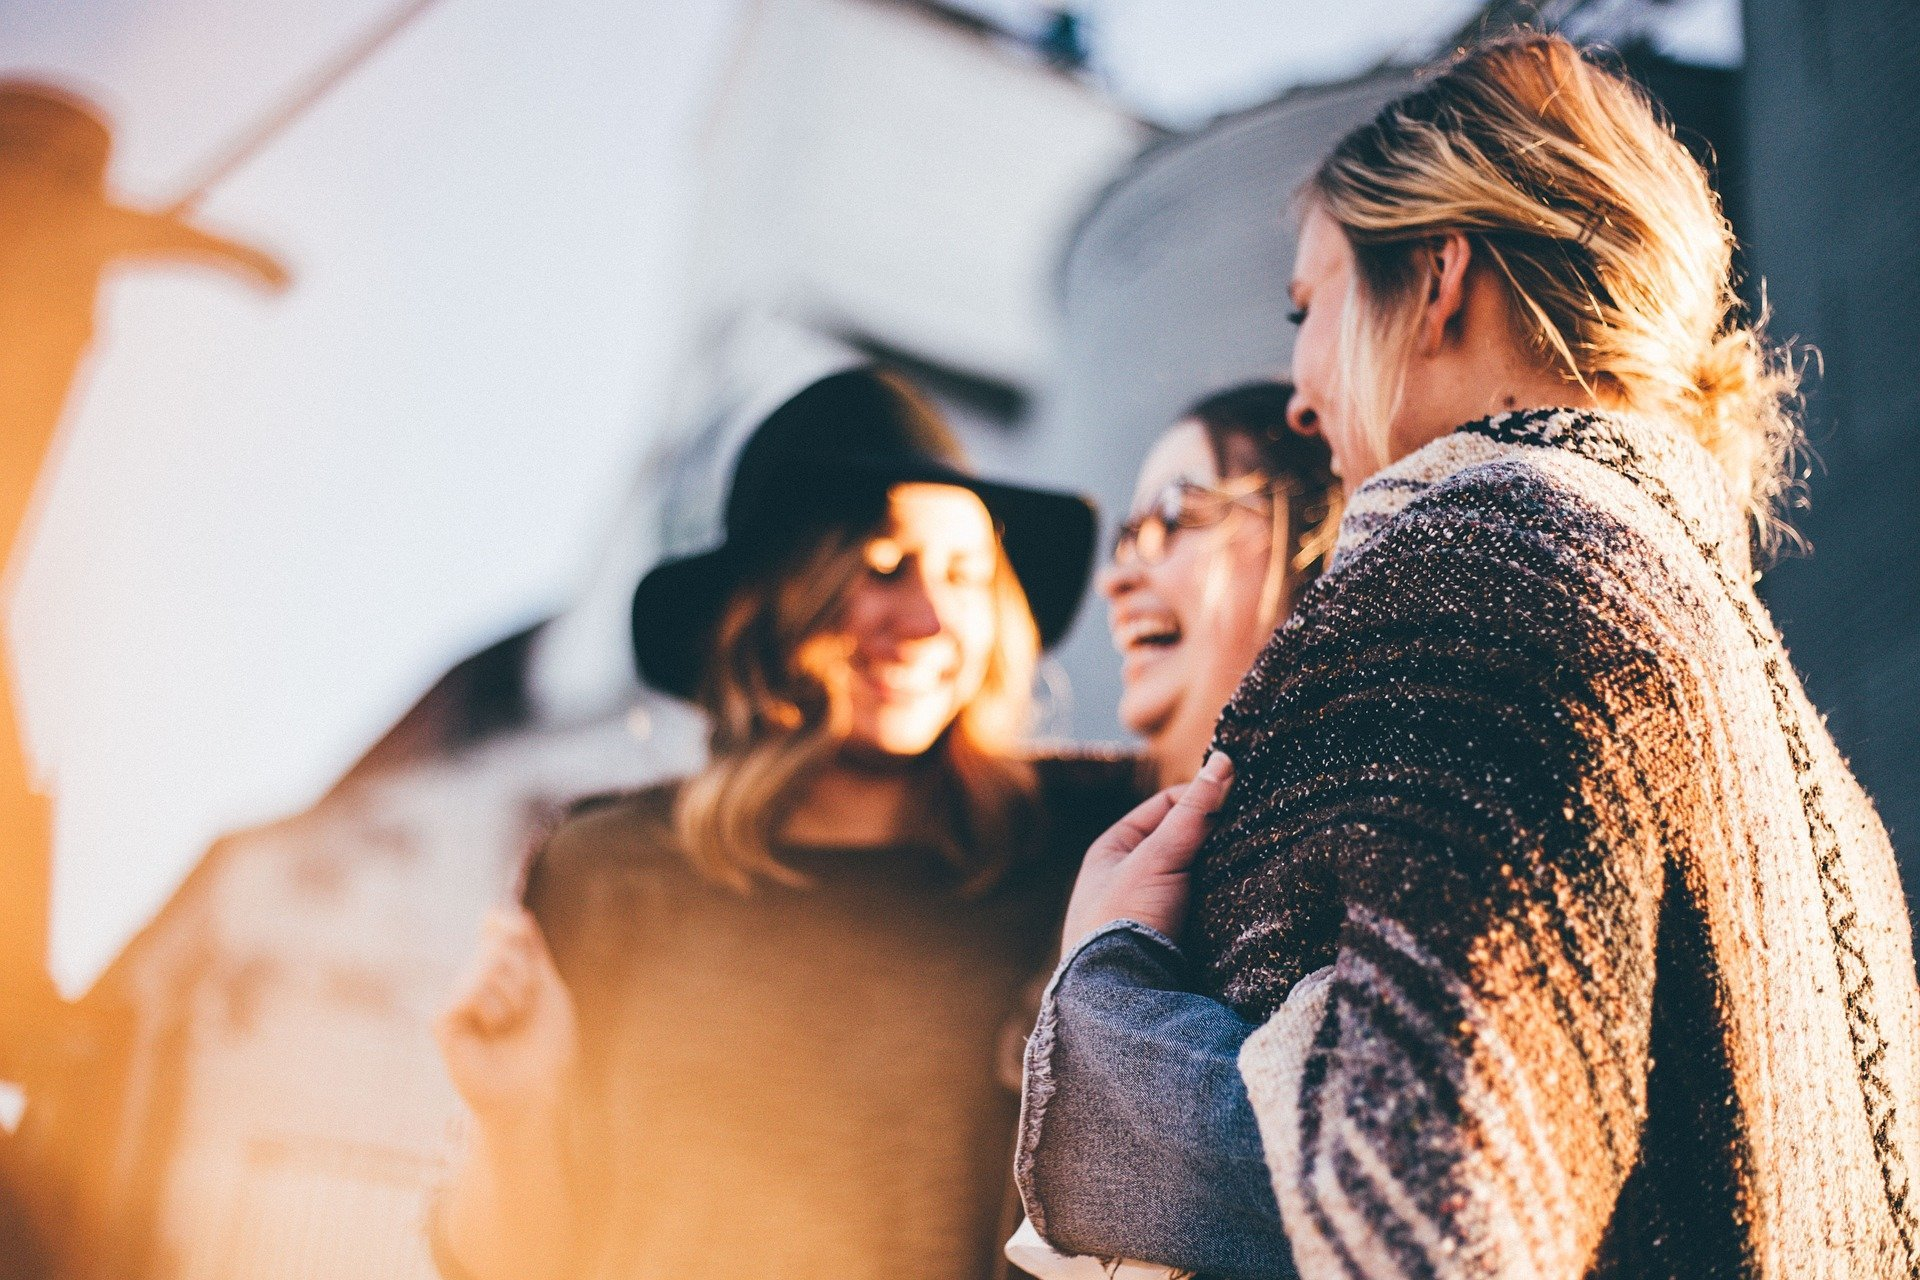 Top Tips To Help You Deal With Social Anxiety